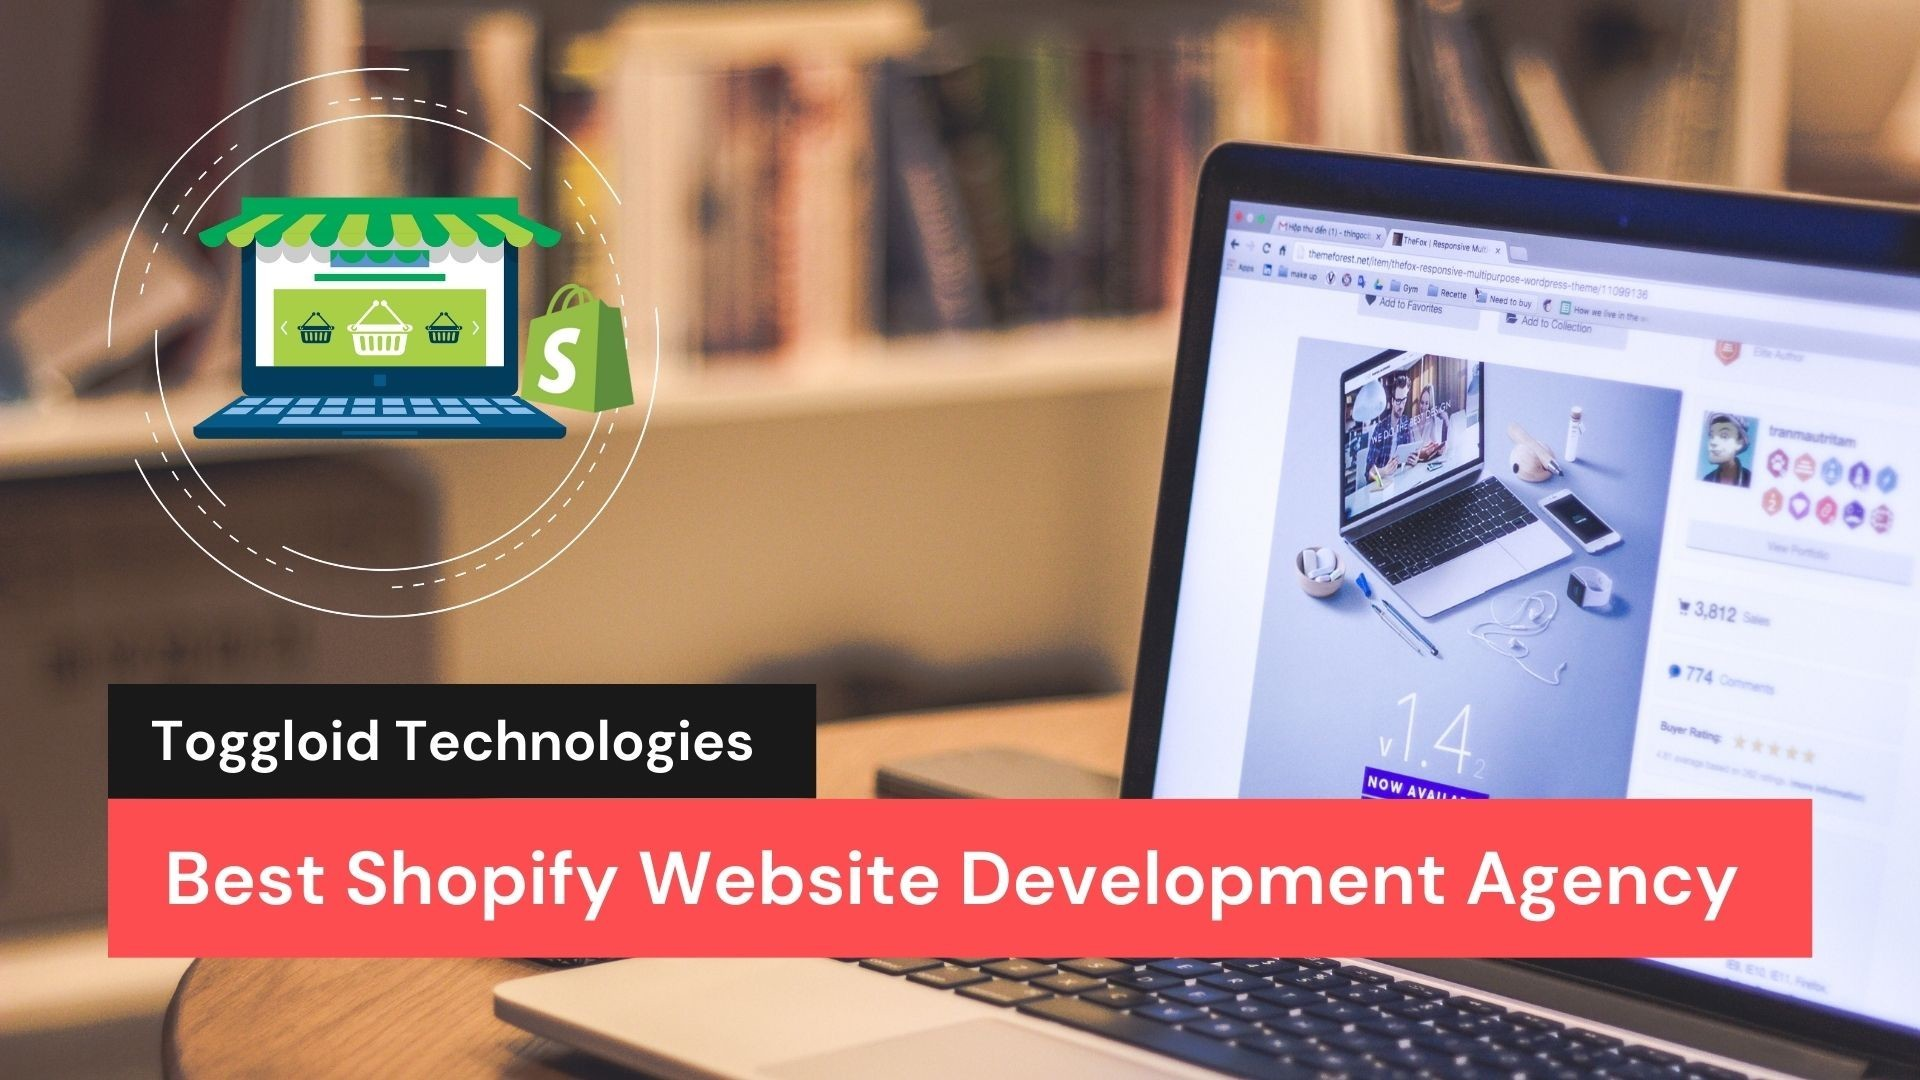 Best Shopify Website Development Agency - Toggloid Technologies